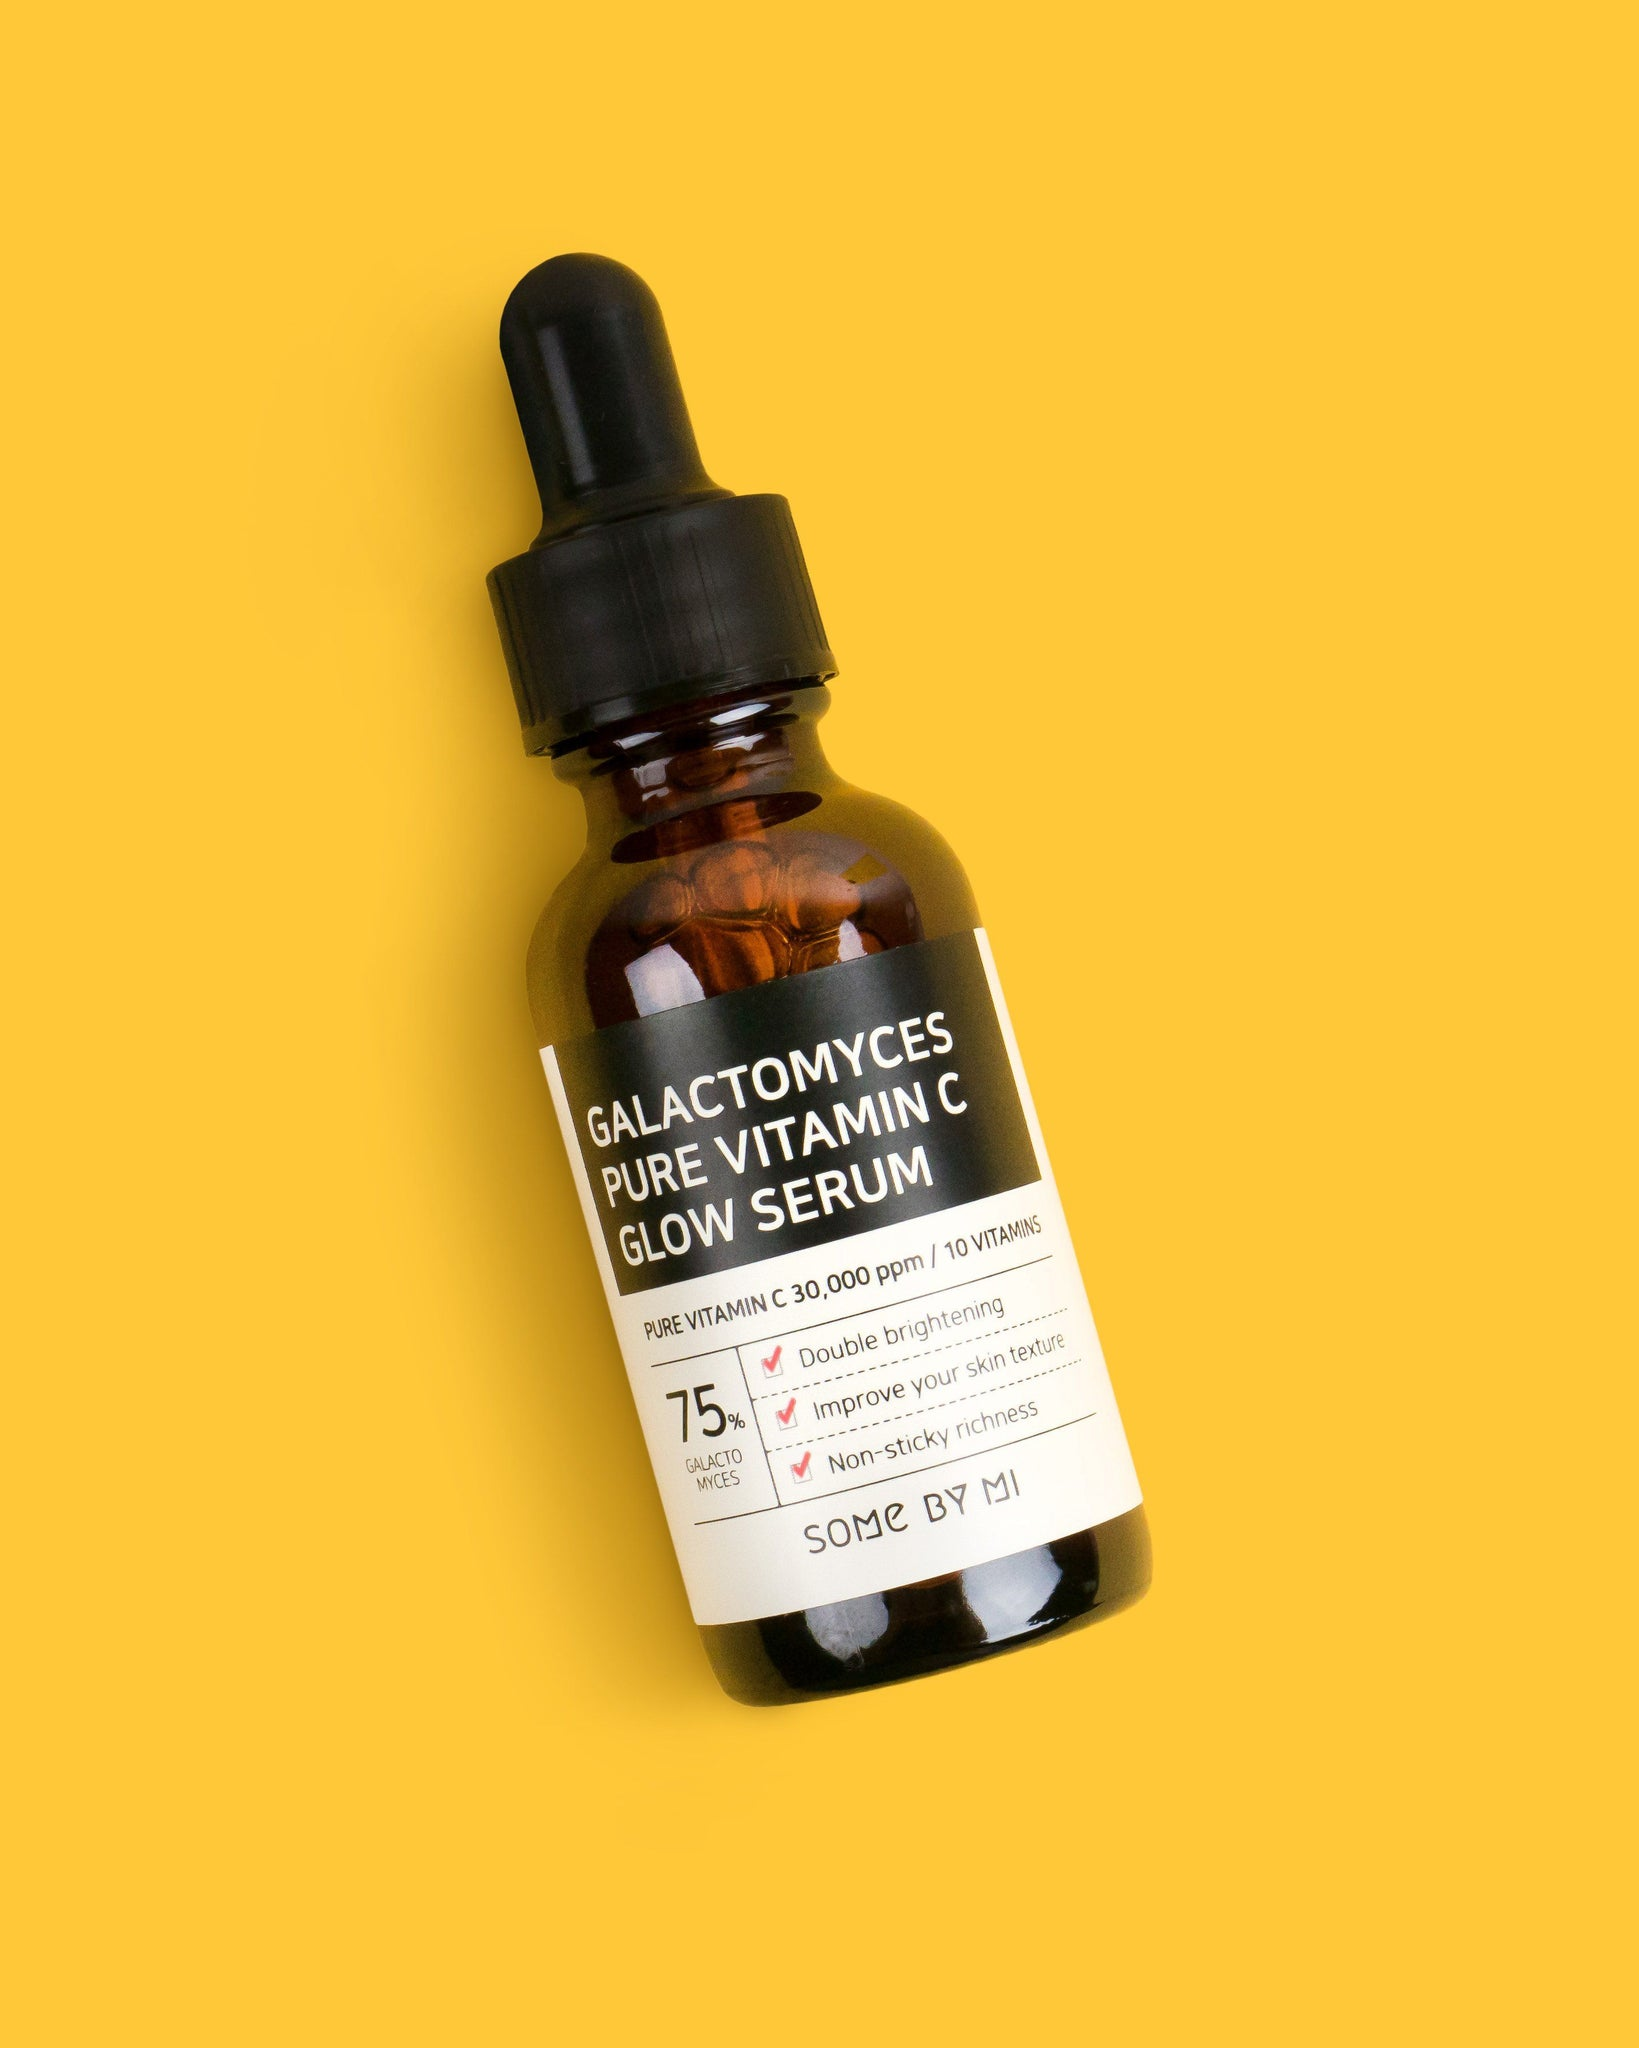 SOME BY MI Galactomyces Pure Vitamin C Glow Serum